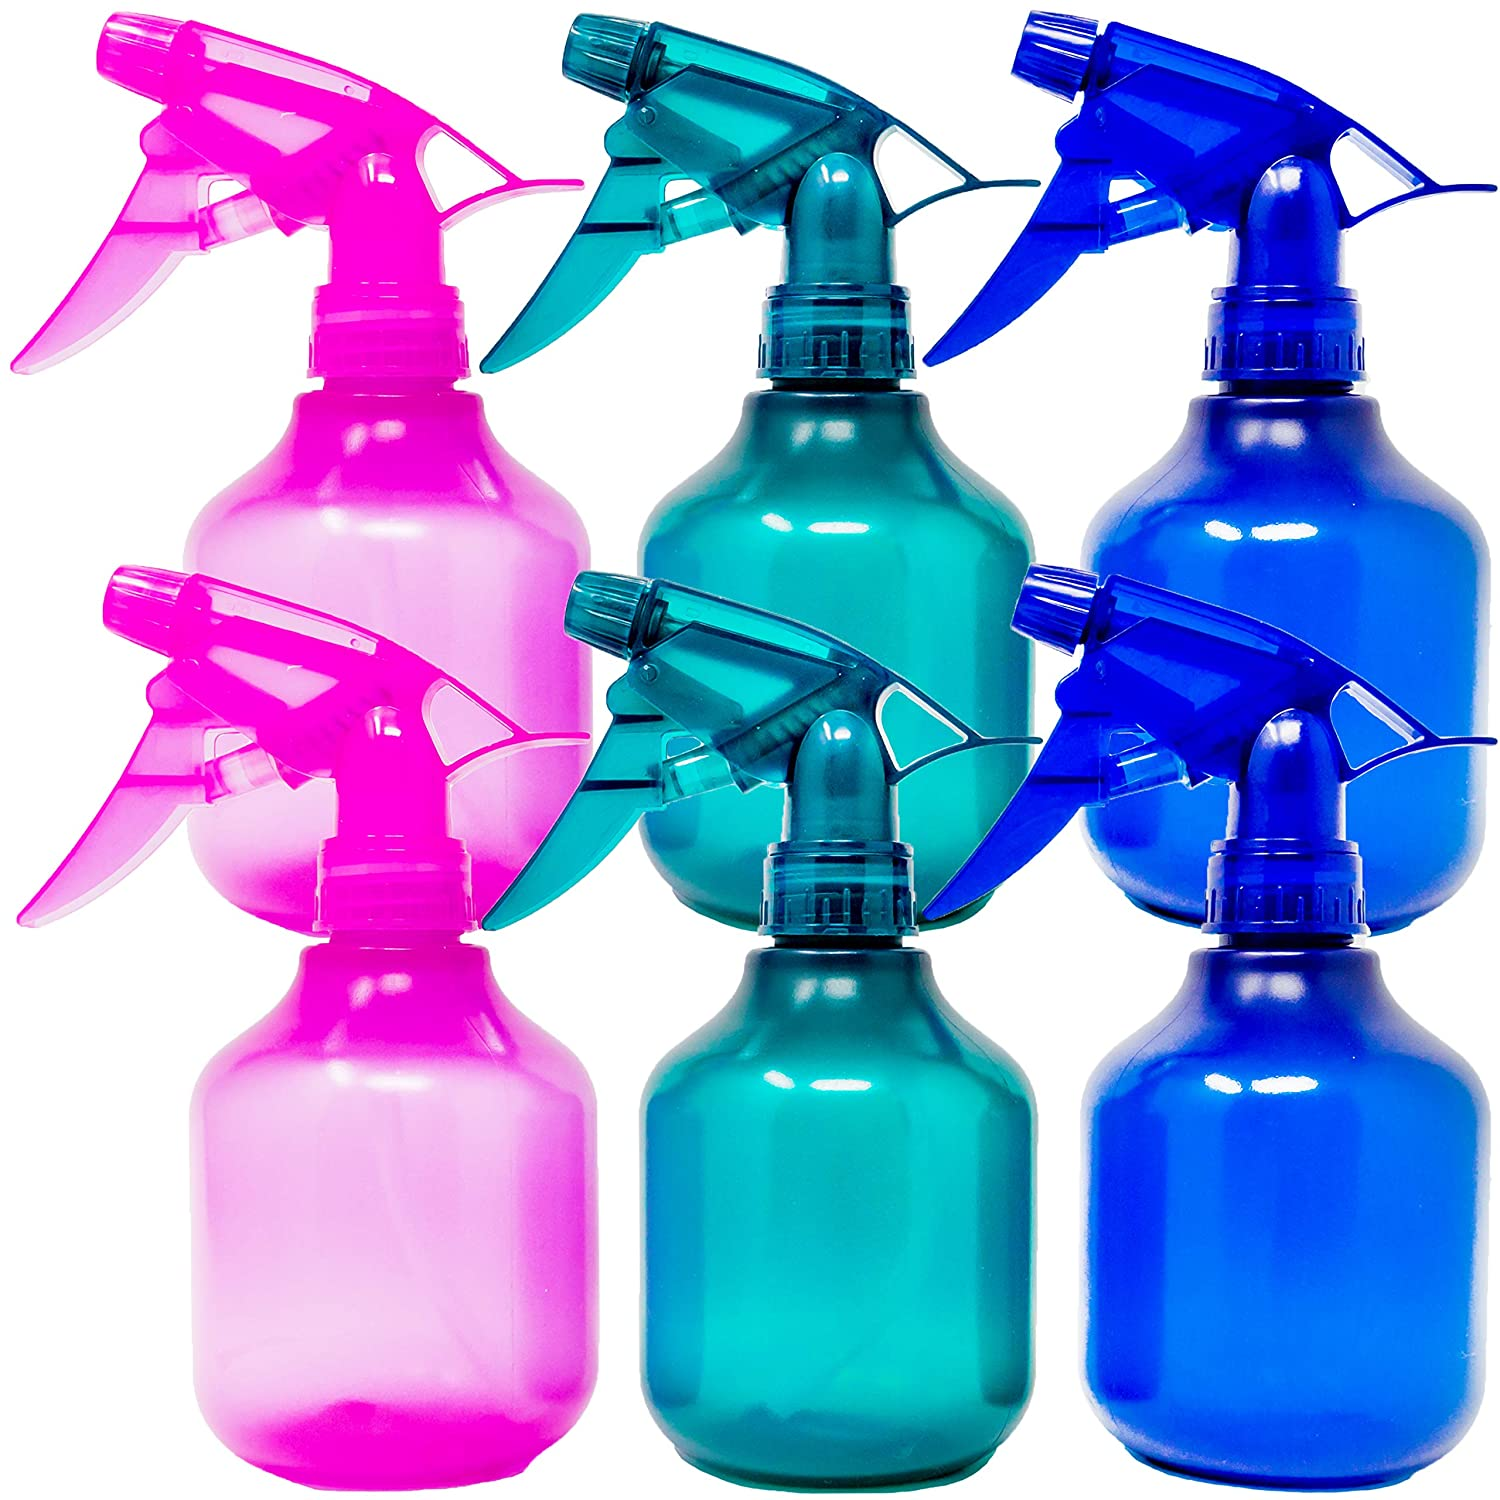 Youngever 6 Pack Empty Plastic Spray Bottles, 12 Ounce Spray Bottles for Hair and Cleaning Solutions, 3 Assorted Colors